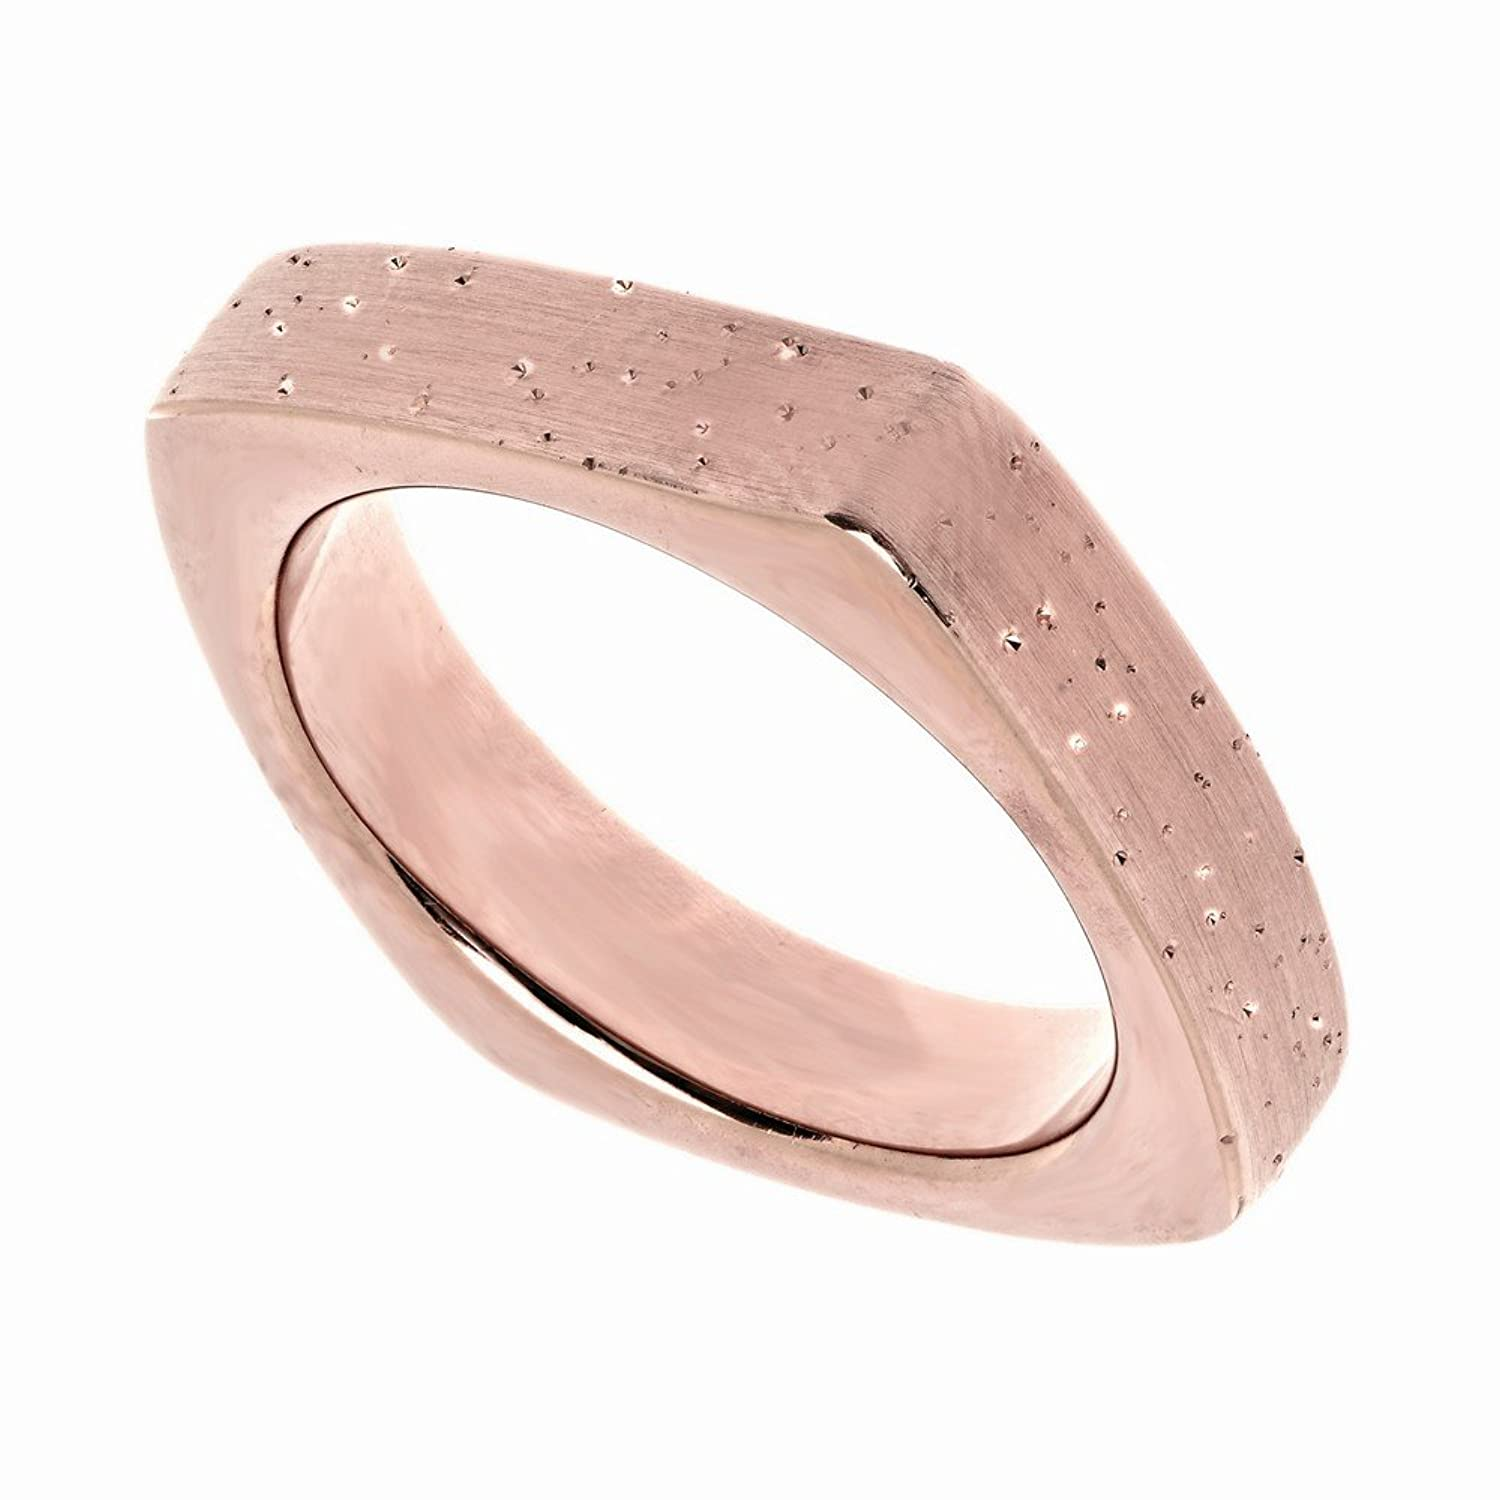 Amazon.com: Silver Rose Finish 4.7mm Shiny Textured Square Type Ring ...